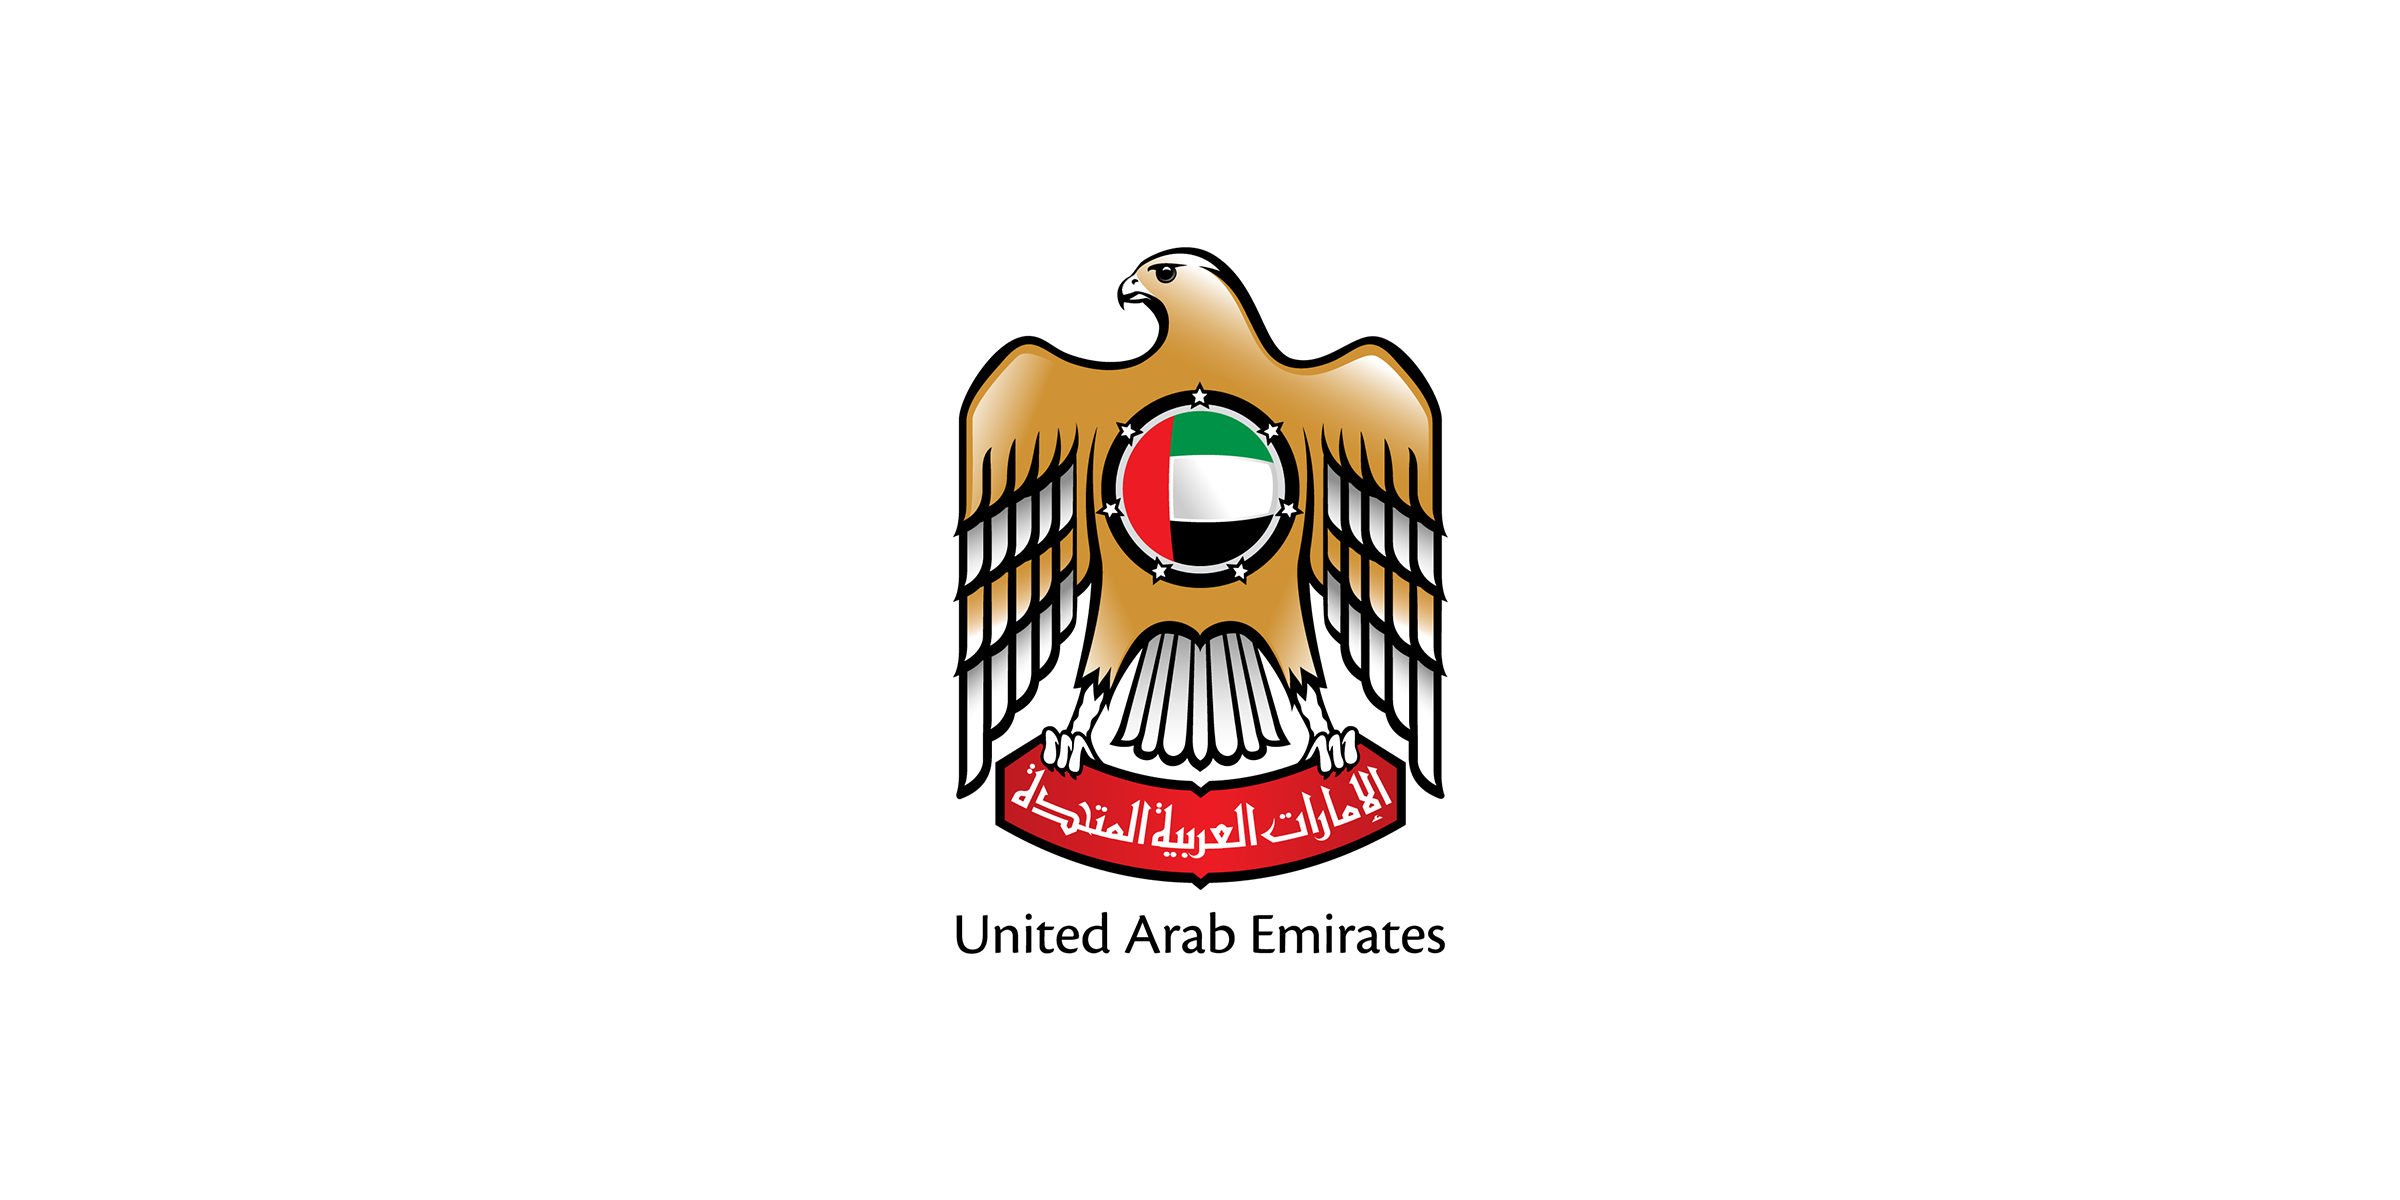 19-United Arab Emirates.png